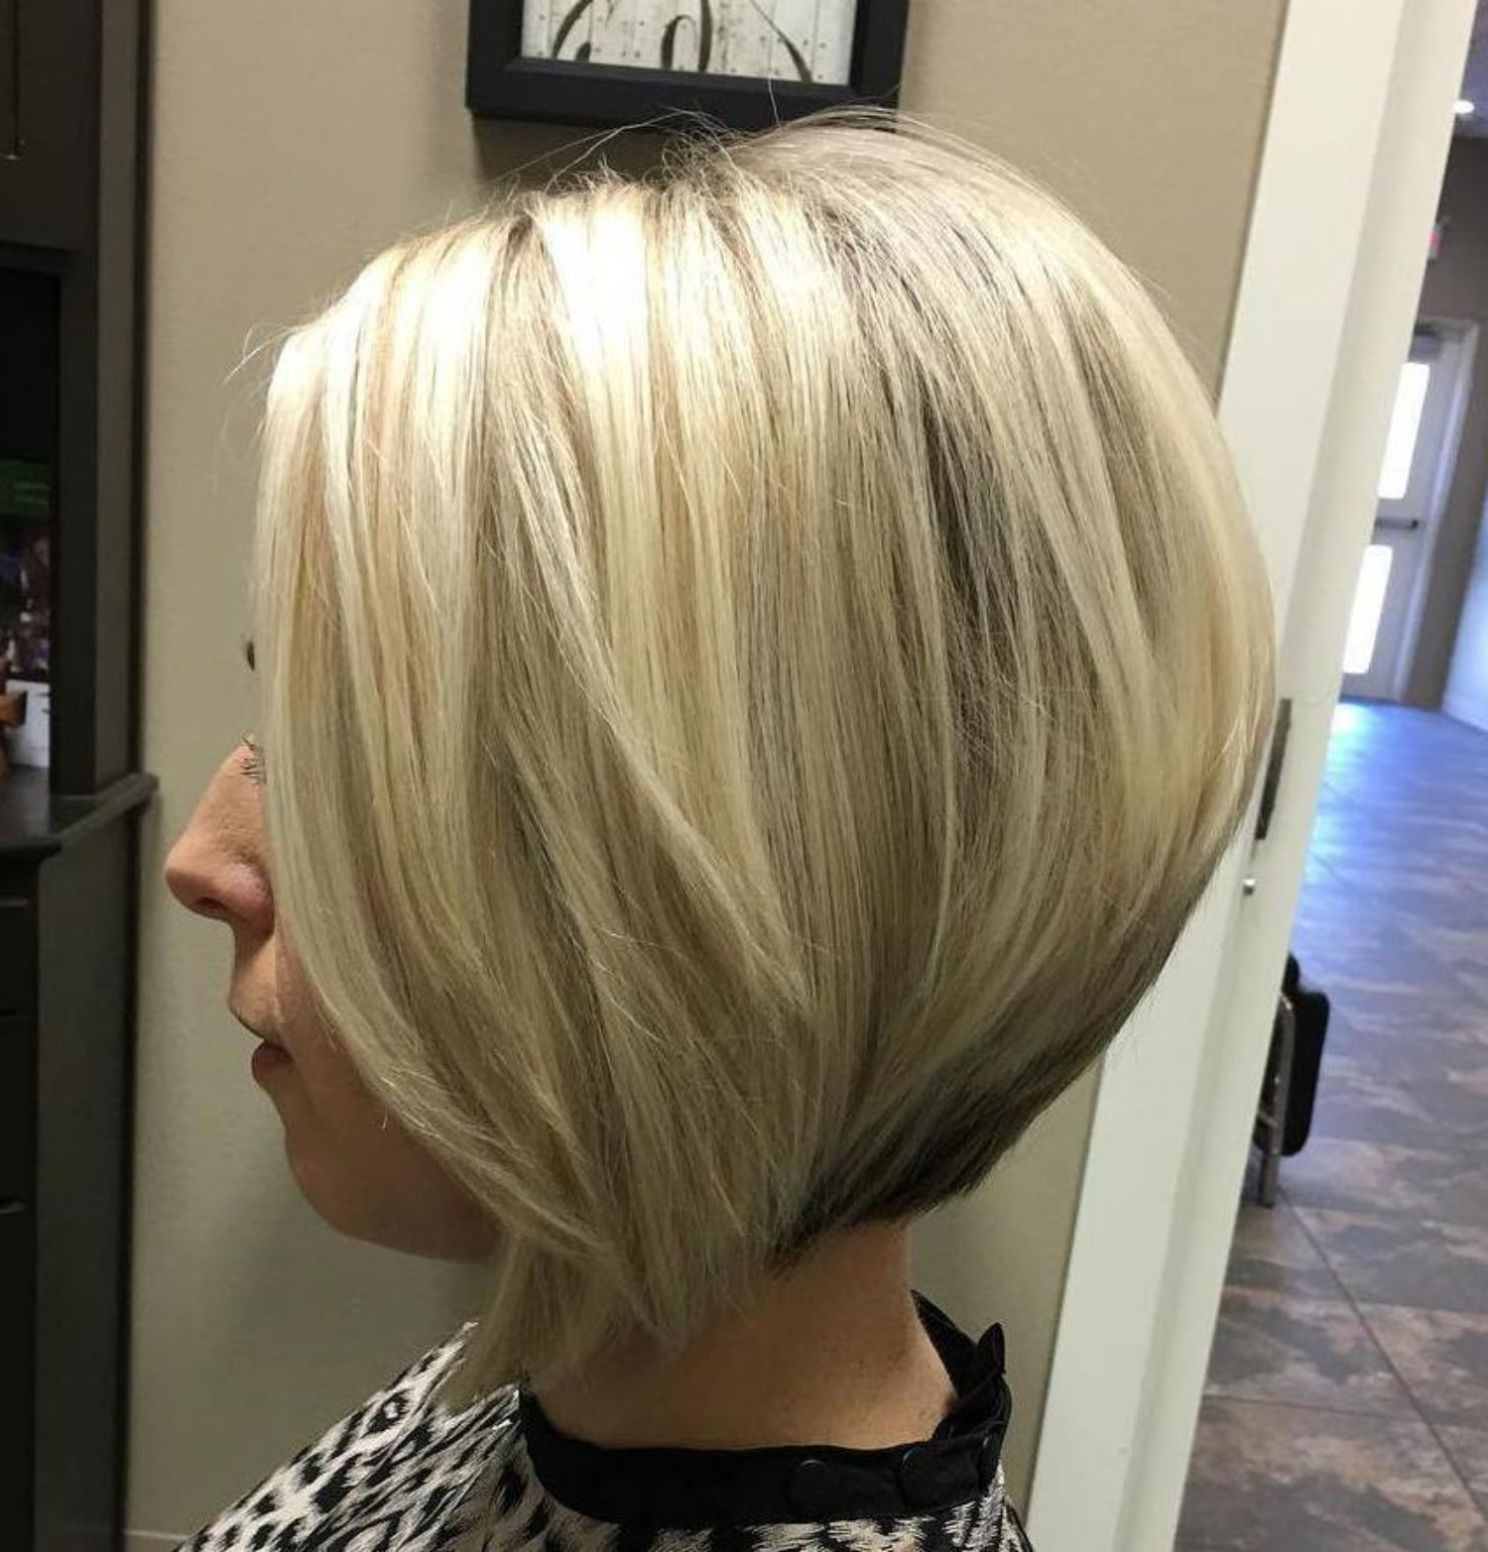 Pin On Hairstyles In Preferred Blonde Undercut Bob Hairstyles (Gallery 10 of 20)